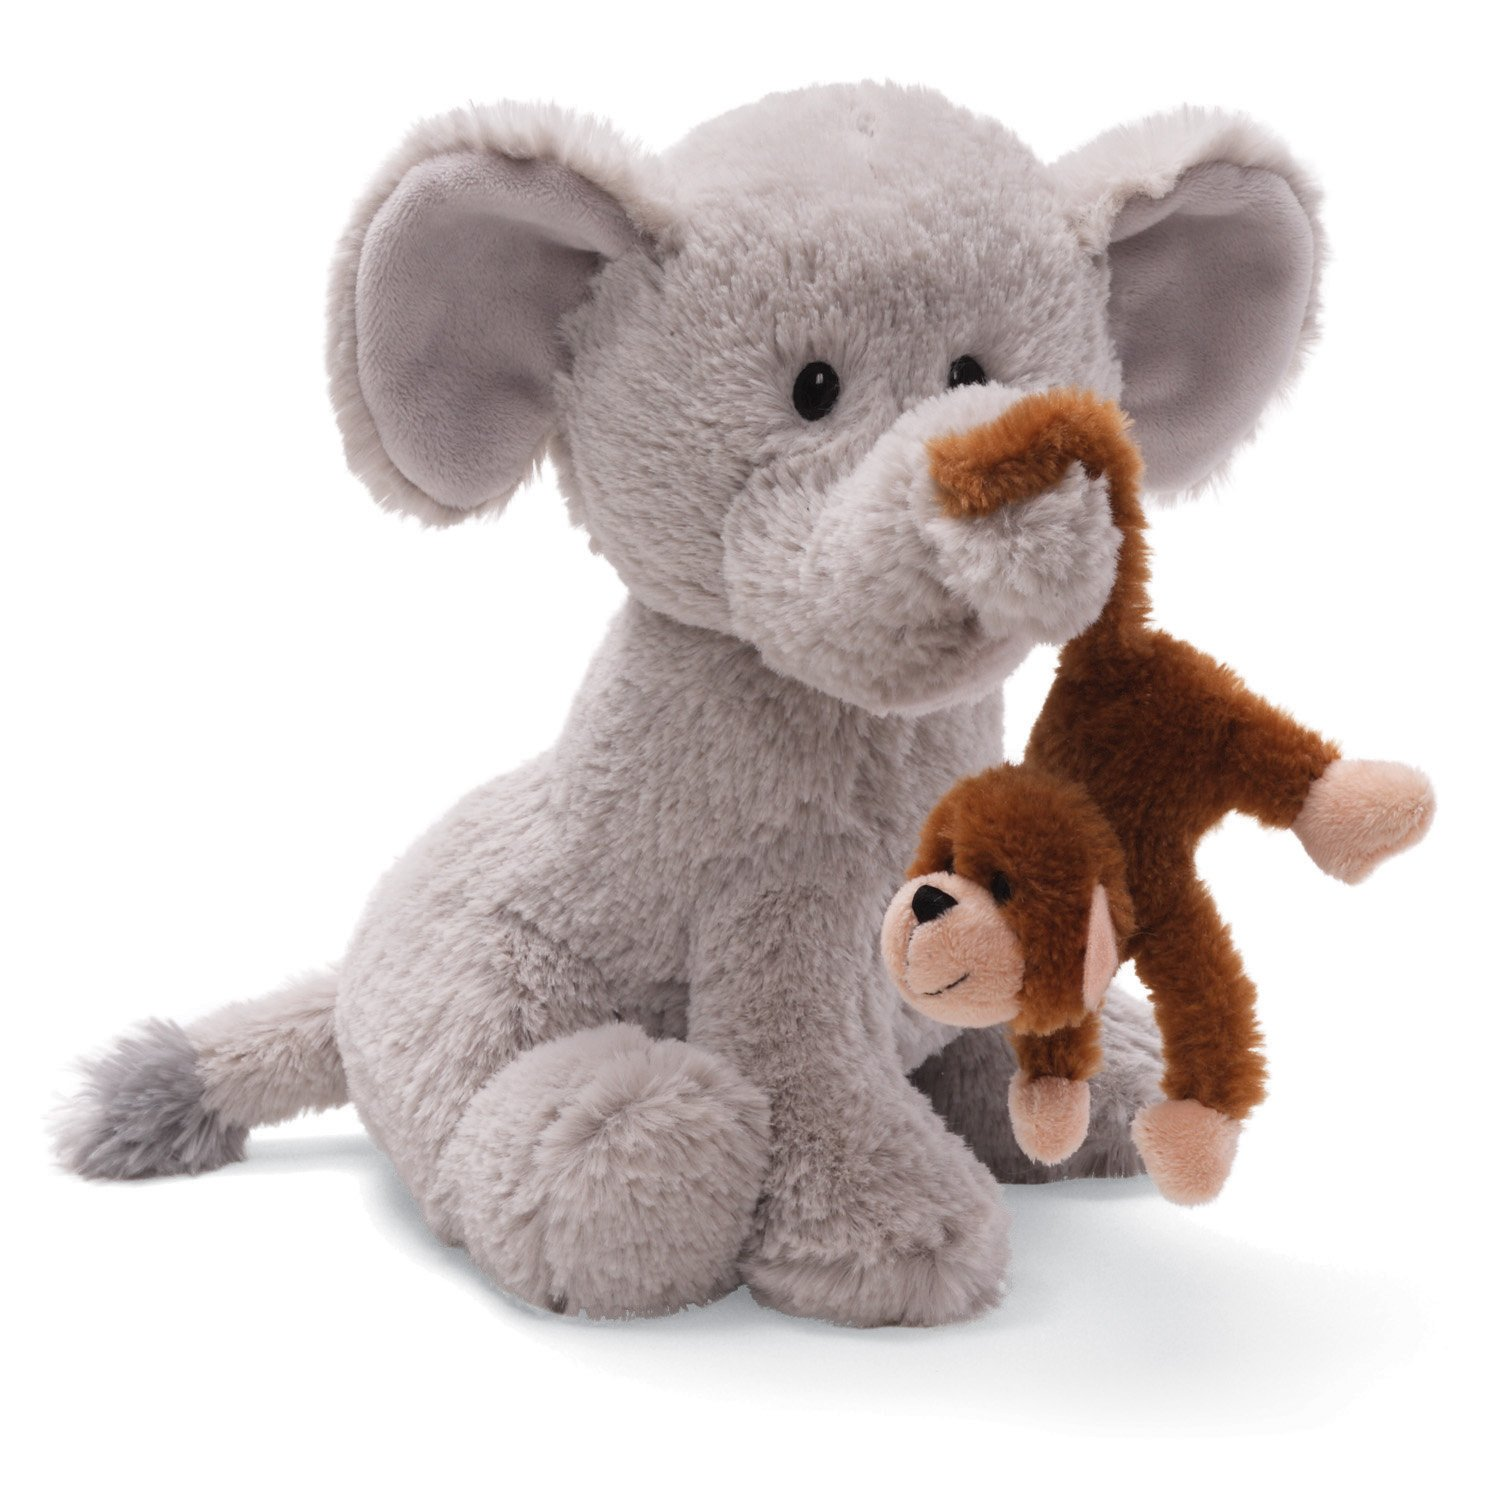 GUND What Would I Do Without You 9.5 Plush 4031019